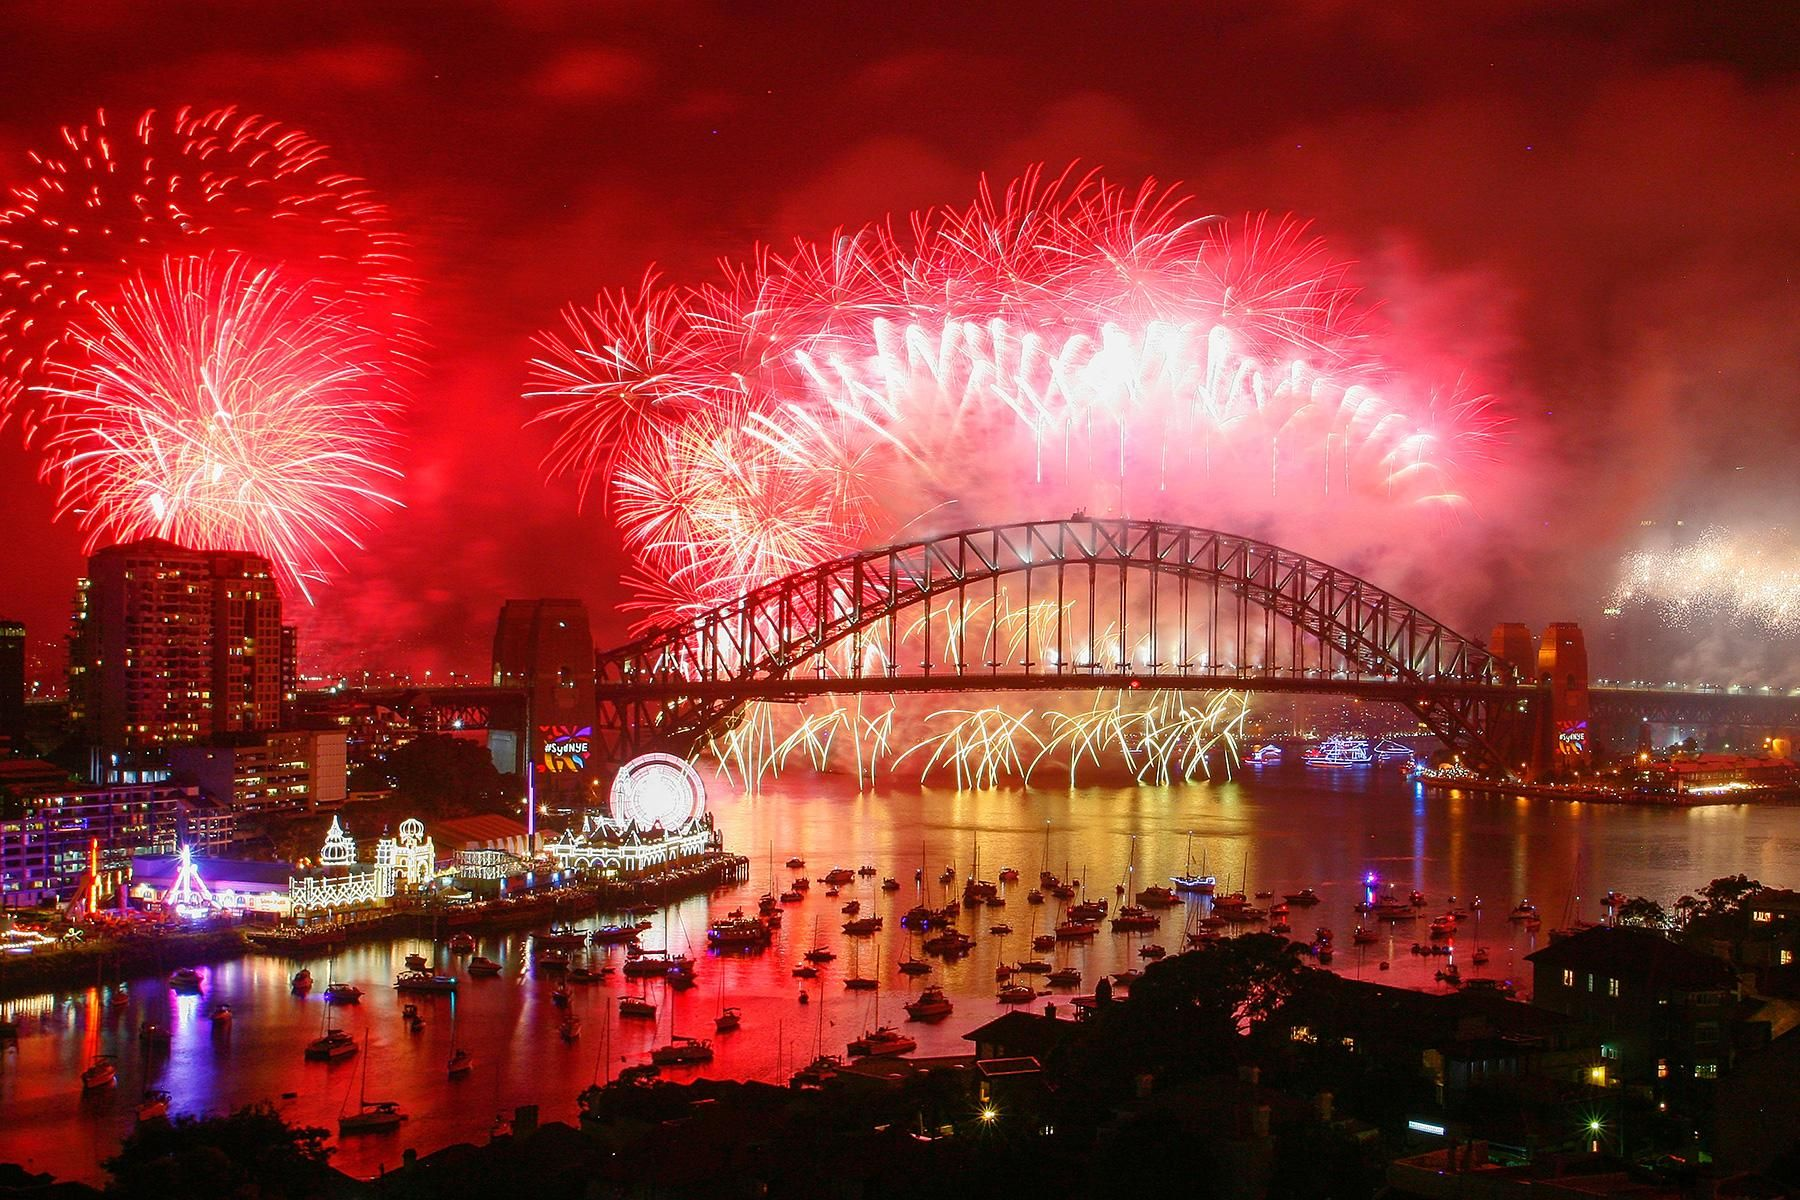 The World S 10 Best New Year S Eve Firework Shows Sydney City New Years Eve Fireworks Tourism